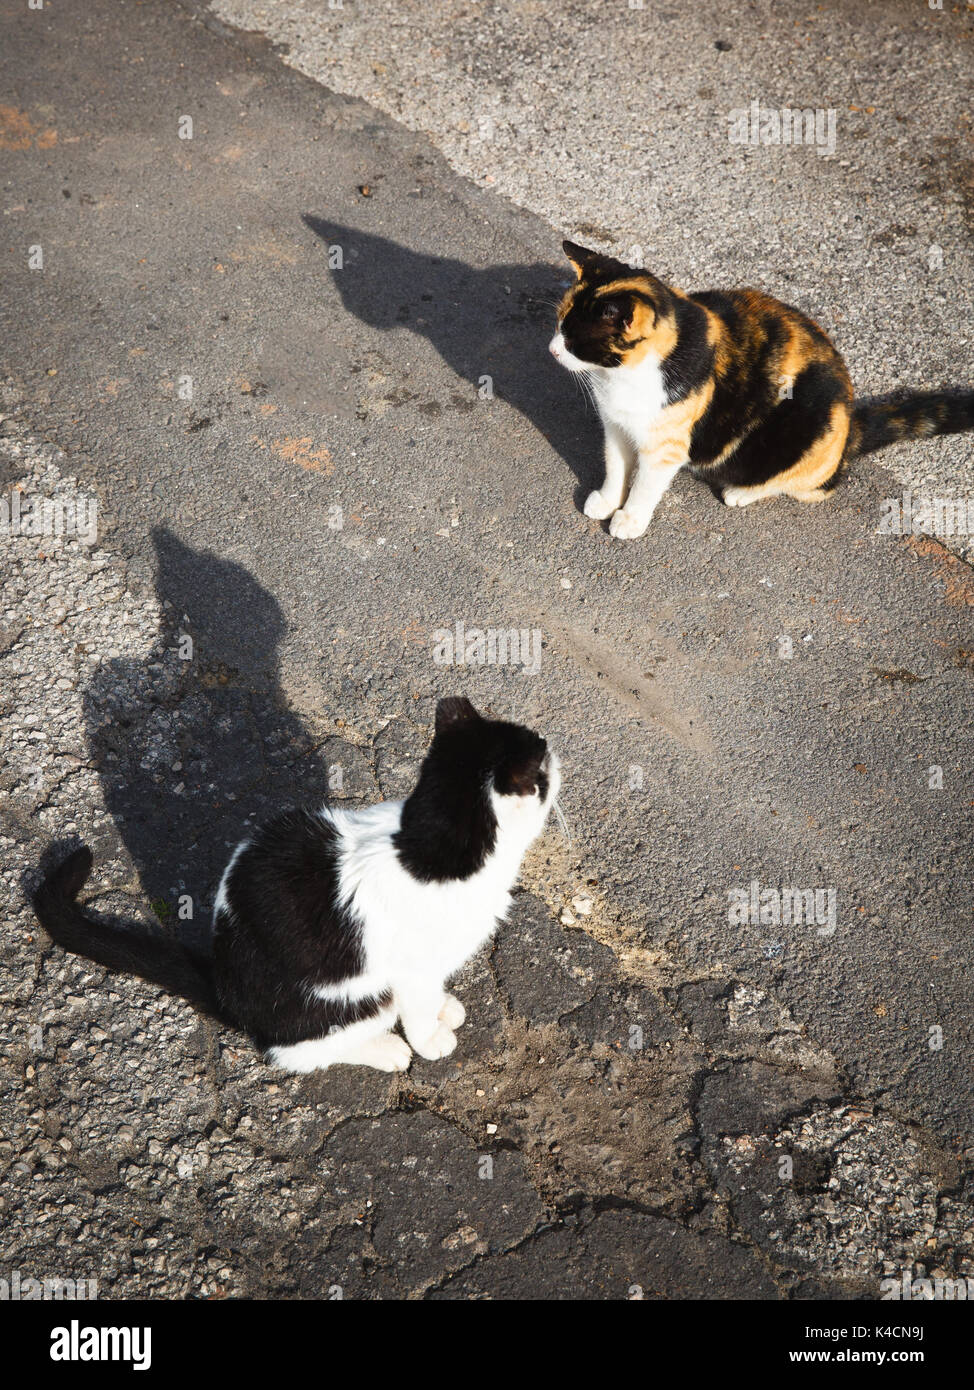 2 Cats In Sunlight - Stock Image